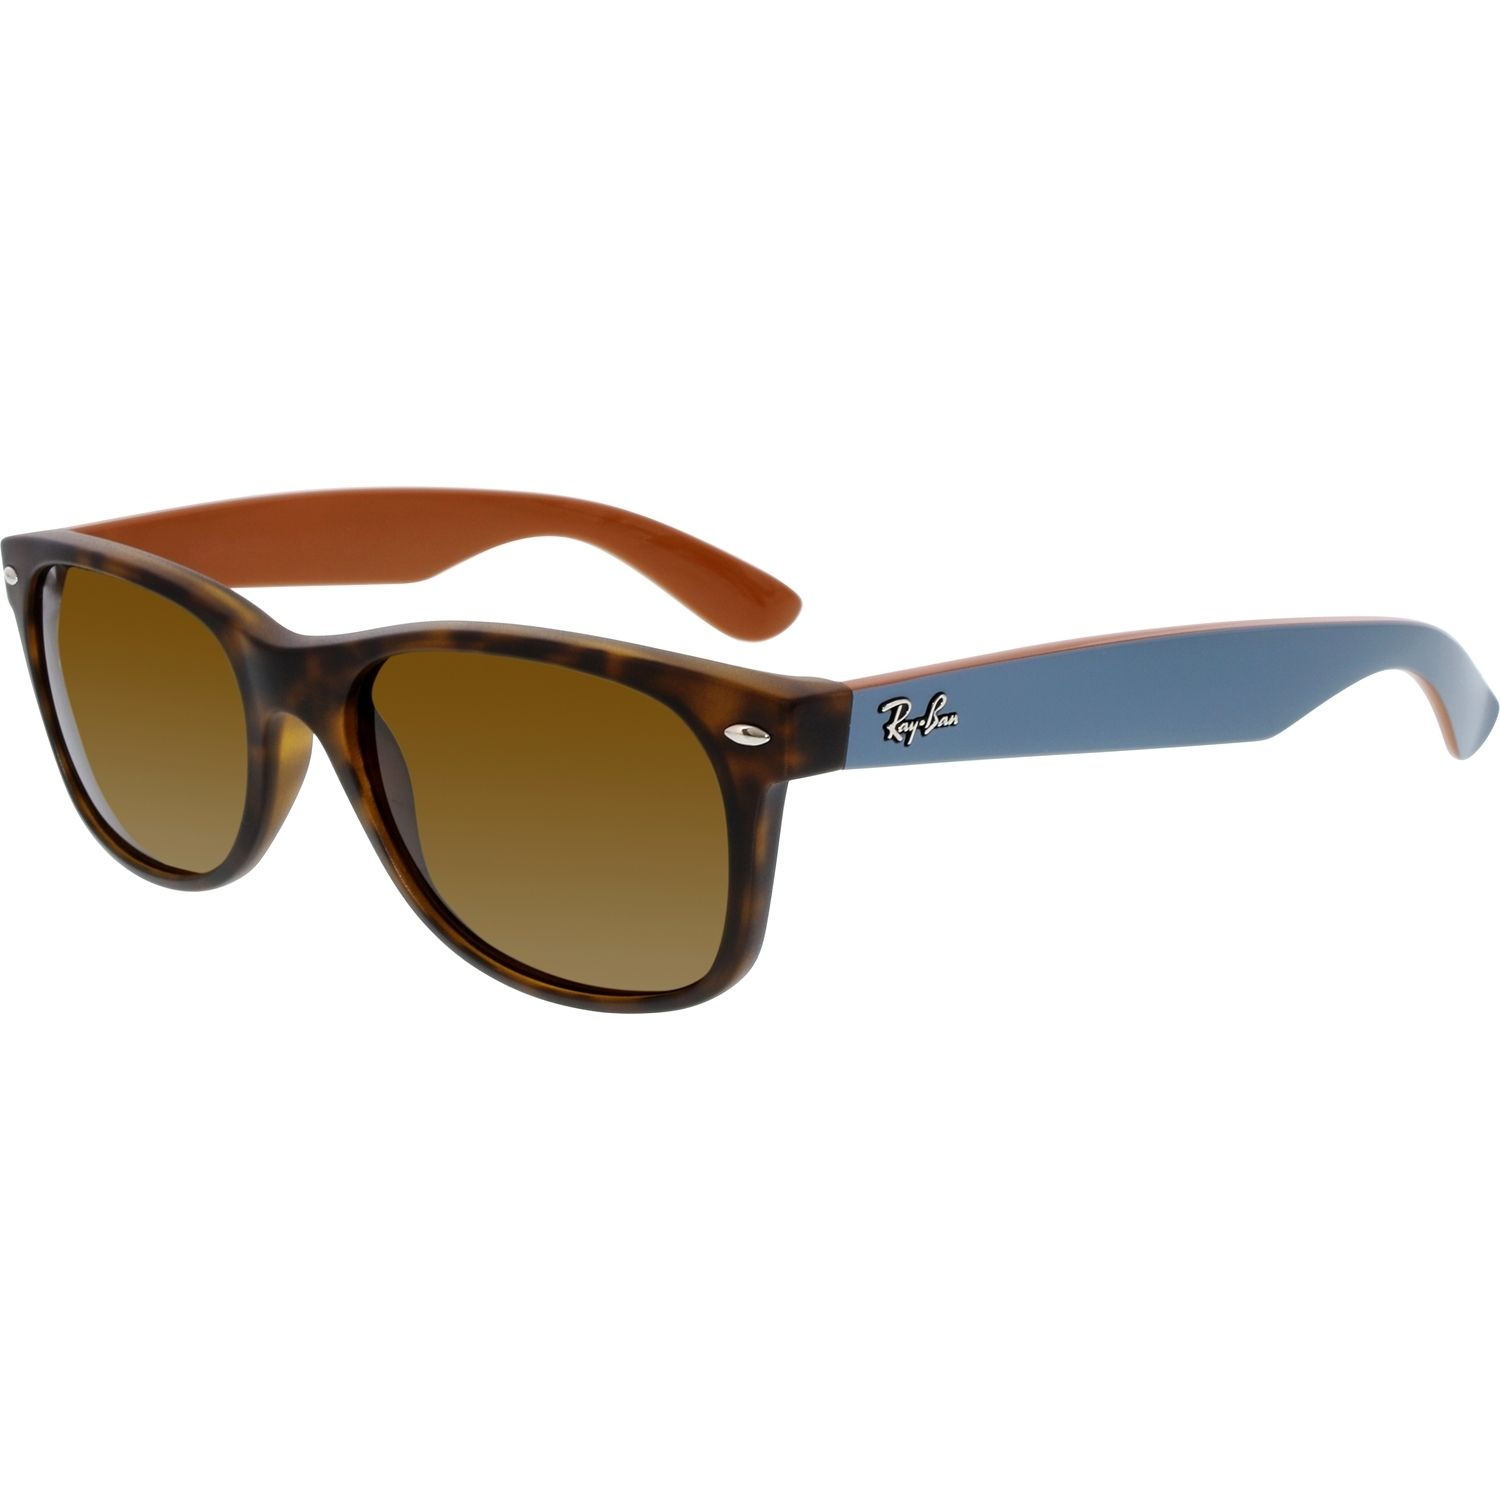 e5578176ff best price ray ban2140 1040 1ff74 c9640  new zealand walmart ray ban mens  rb2132 square sunglasses size 55 8e1d0 625e6